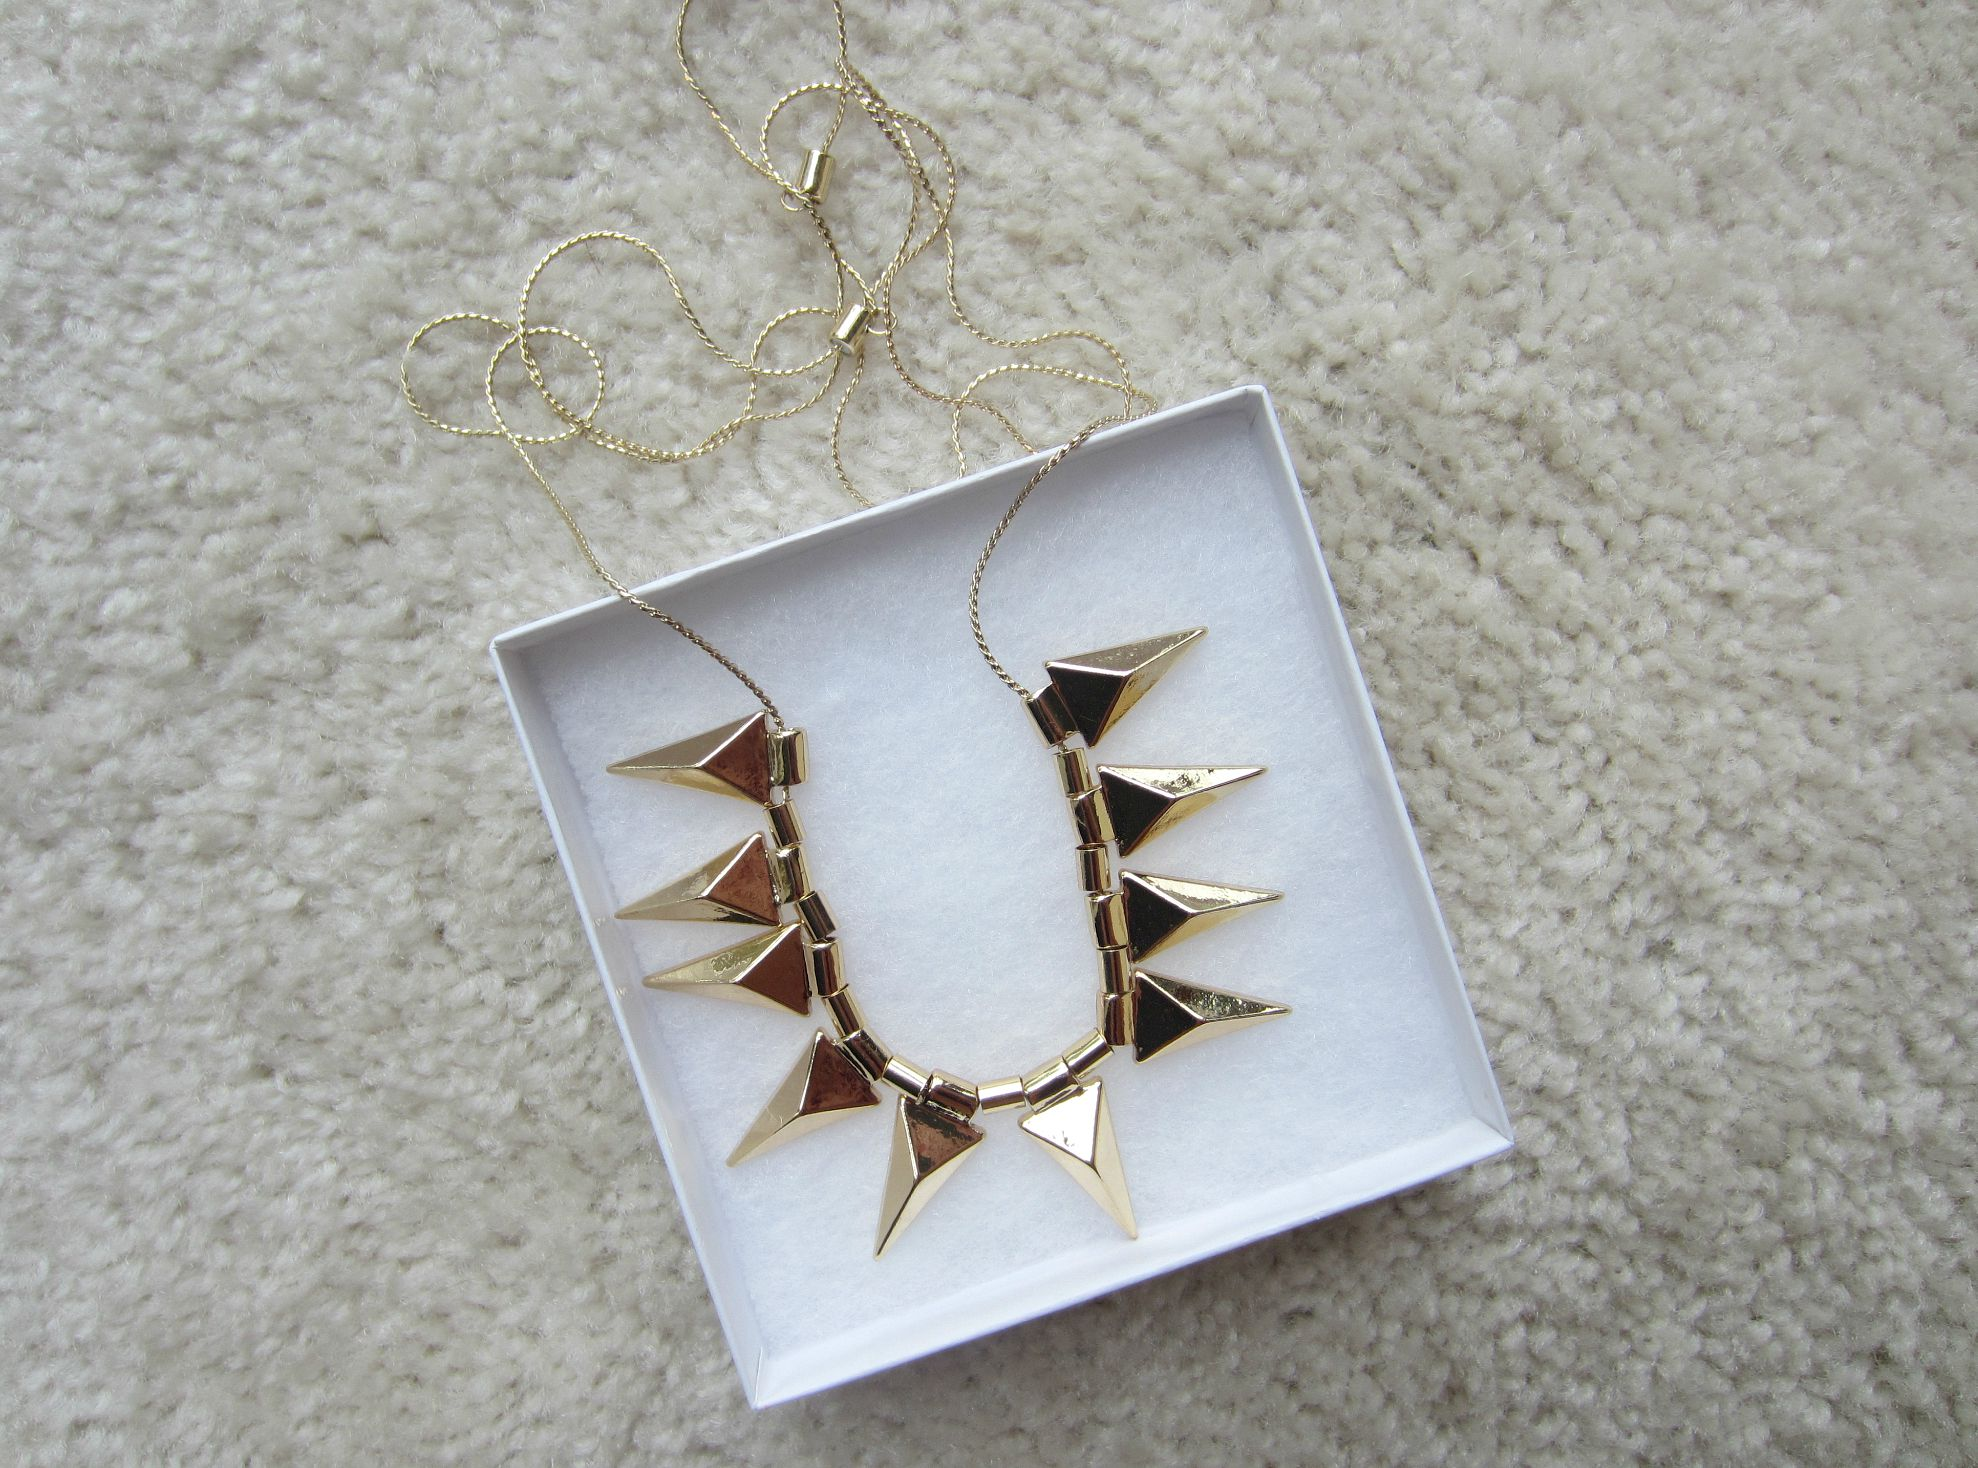 stitch fix romolo rania metal spike necklace gold